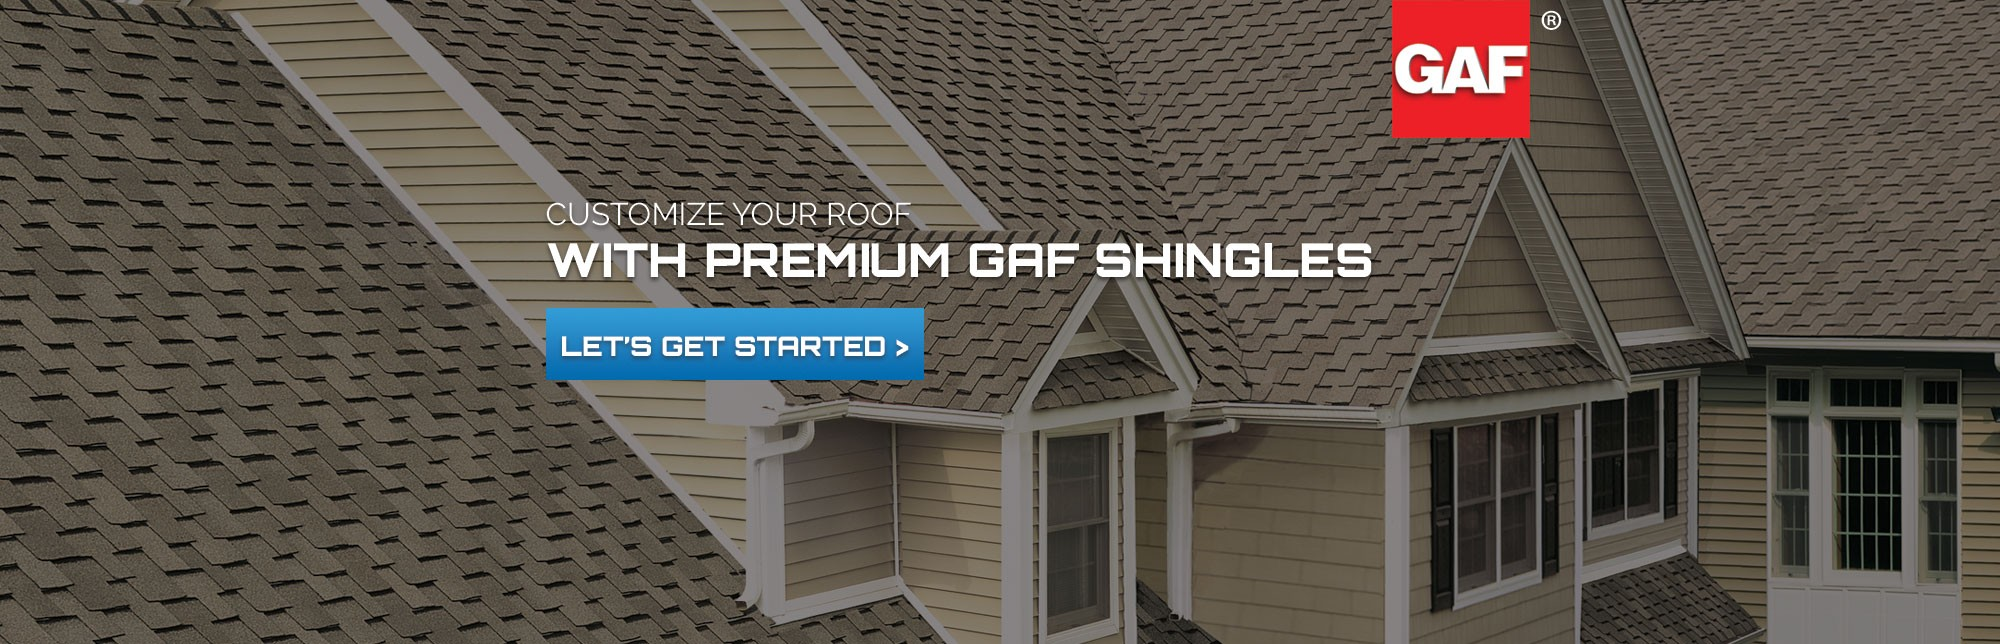 Magic Roofing: New Jersey Roofing, Siding, Gutter U0026 Window Contractors